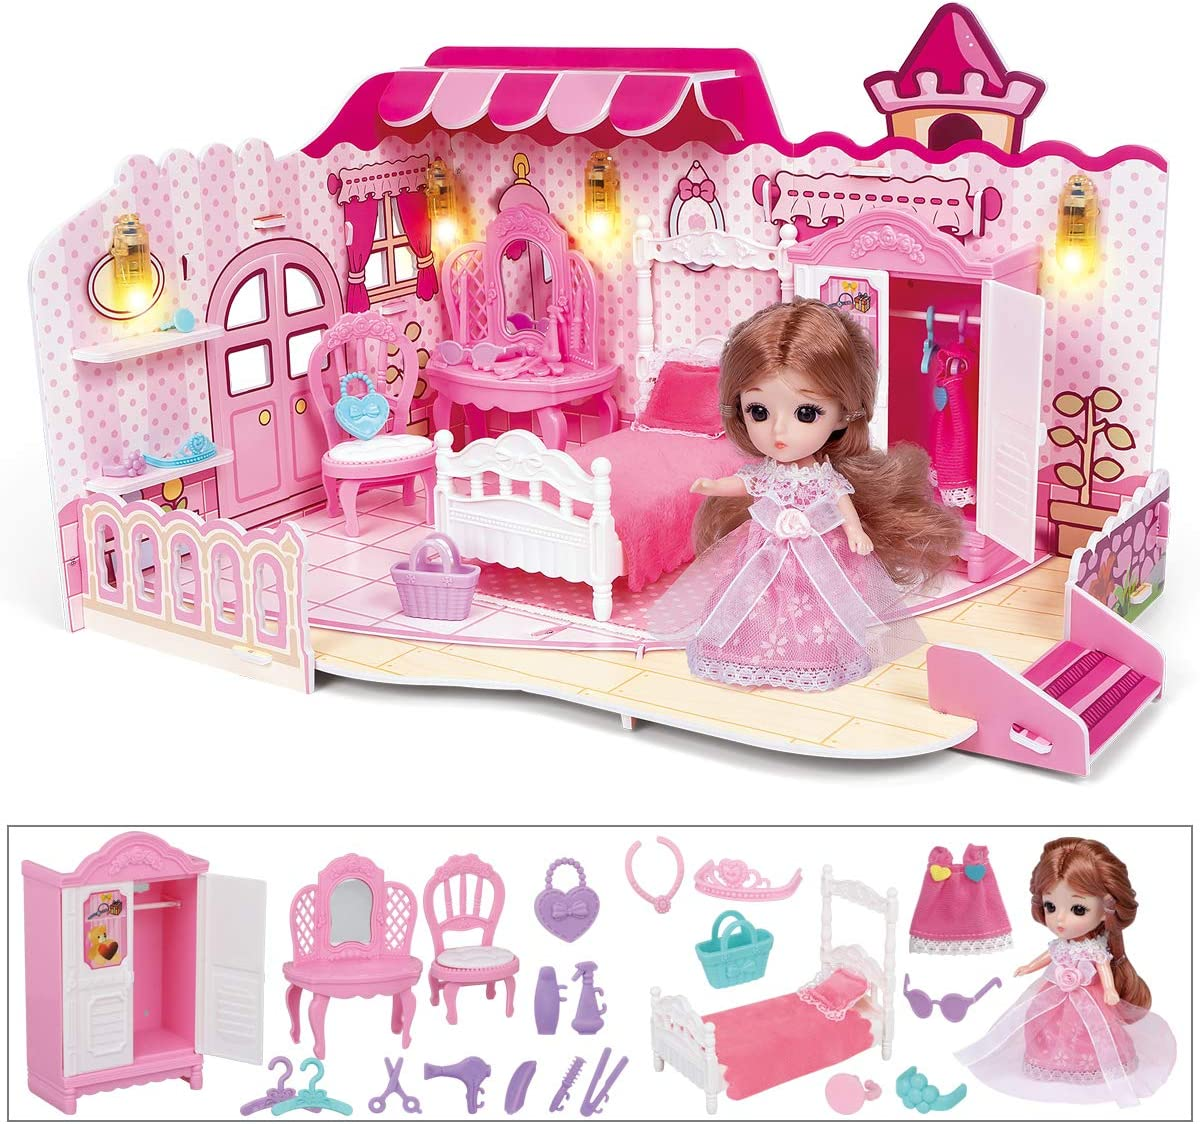 LADUO Mini Dollhouse, Bedroom with Furniture, Lighting, Mini Doll, Doll House Toys for 3-8 Years Girls (Bedroom-Pink)